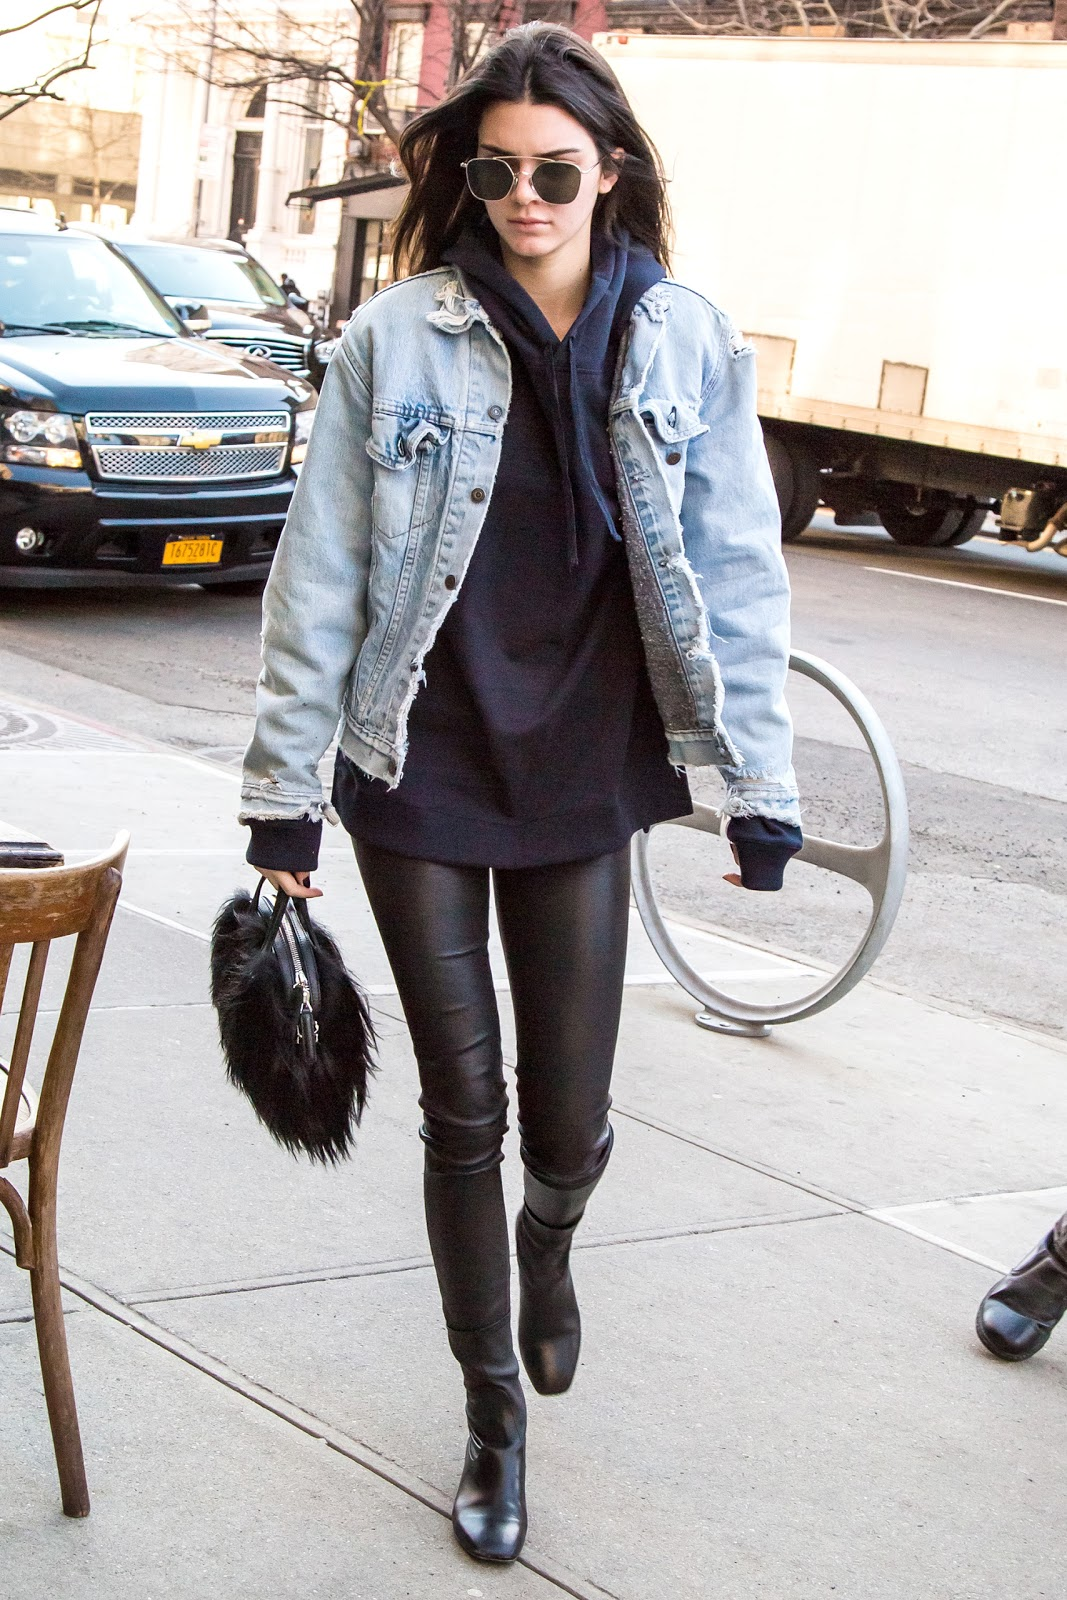 Kat and style Street style inspo KNEDALL JENNER